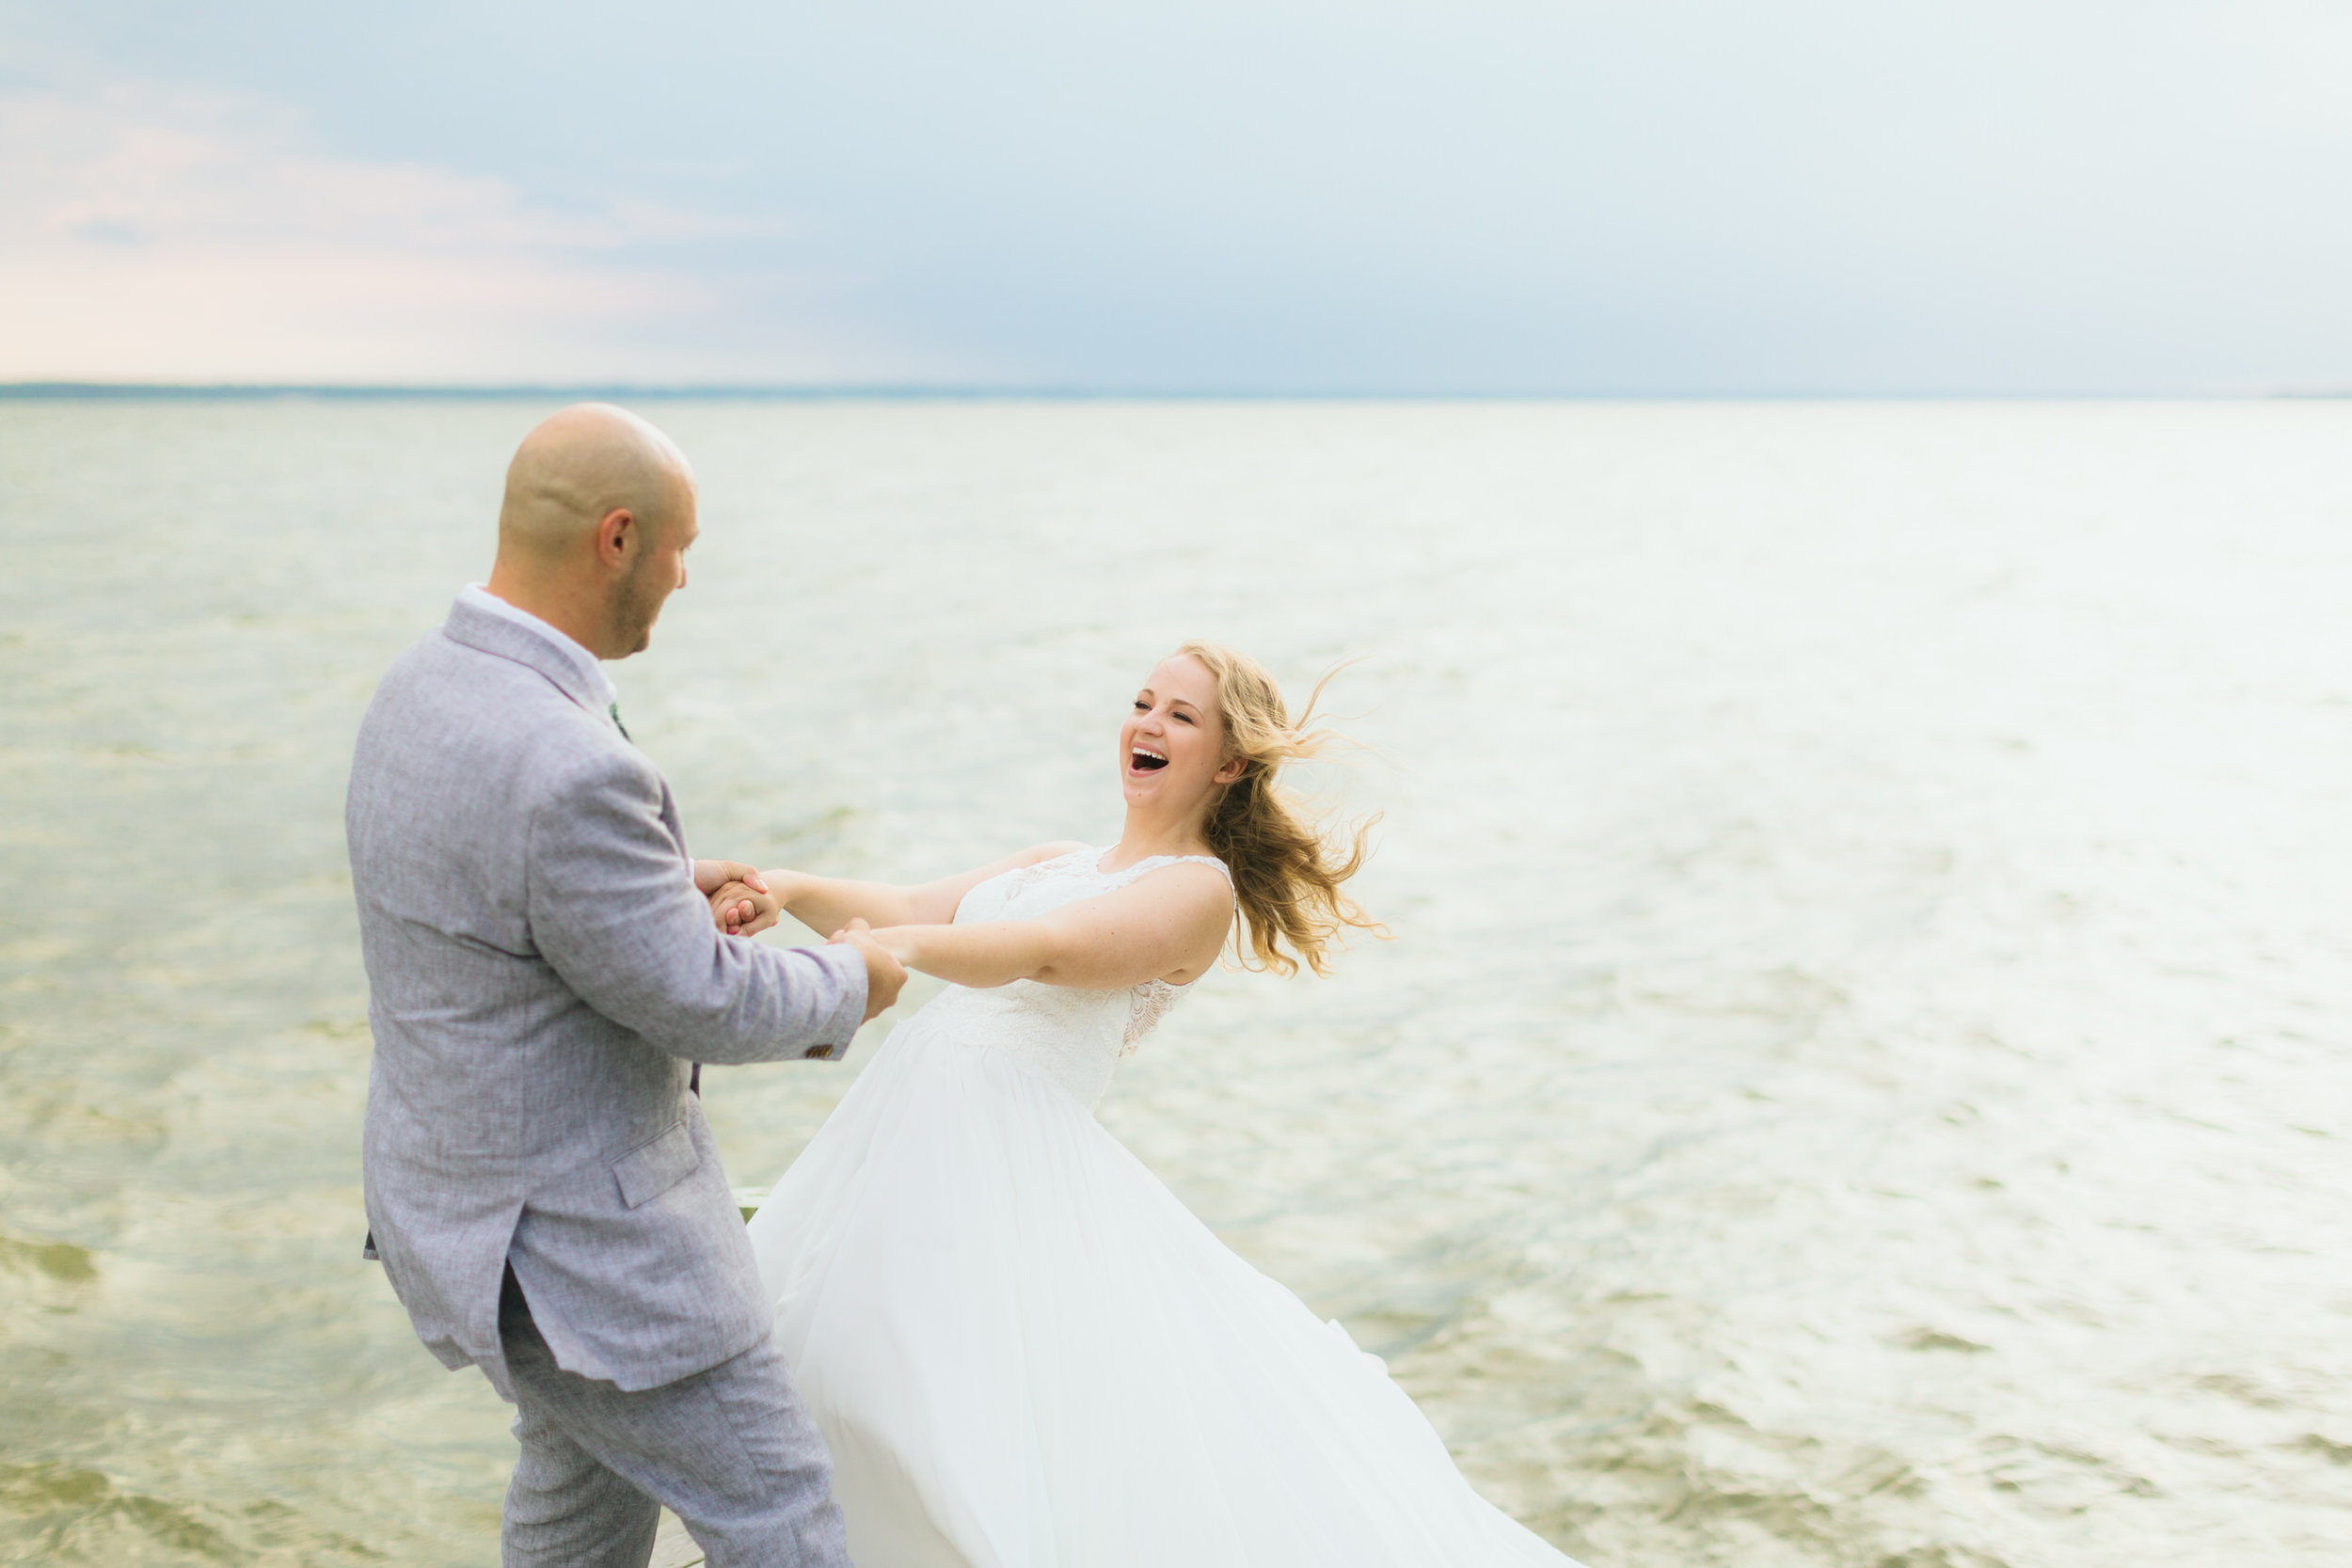 COASTAL VIRGINIA - With literally thousands of miles of Virginia coastline, there's so many cool, private locations to choose from. Elopements at the Virginia Coast are tranquil, fun, and carefree.